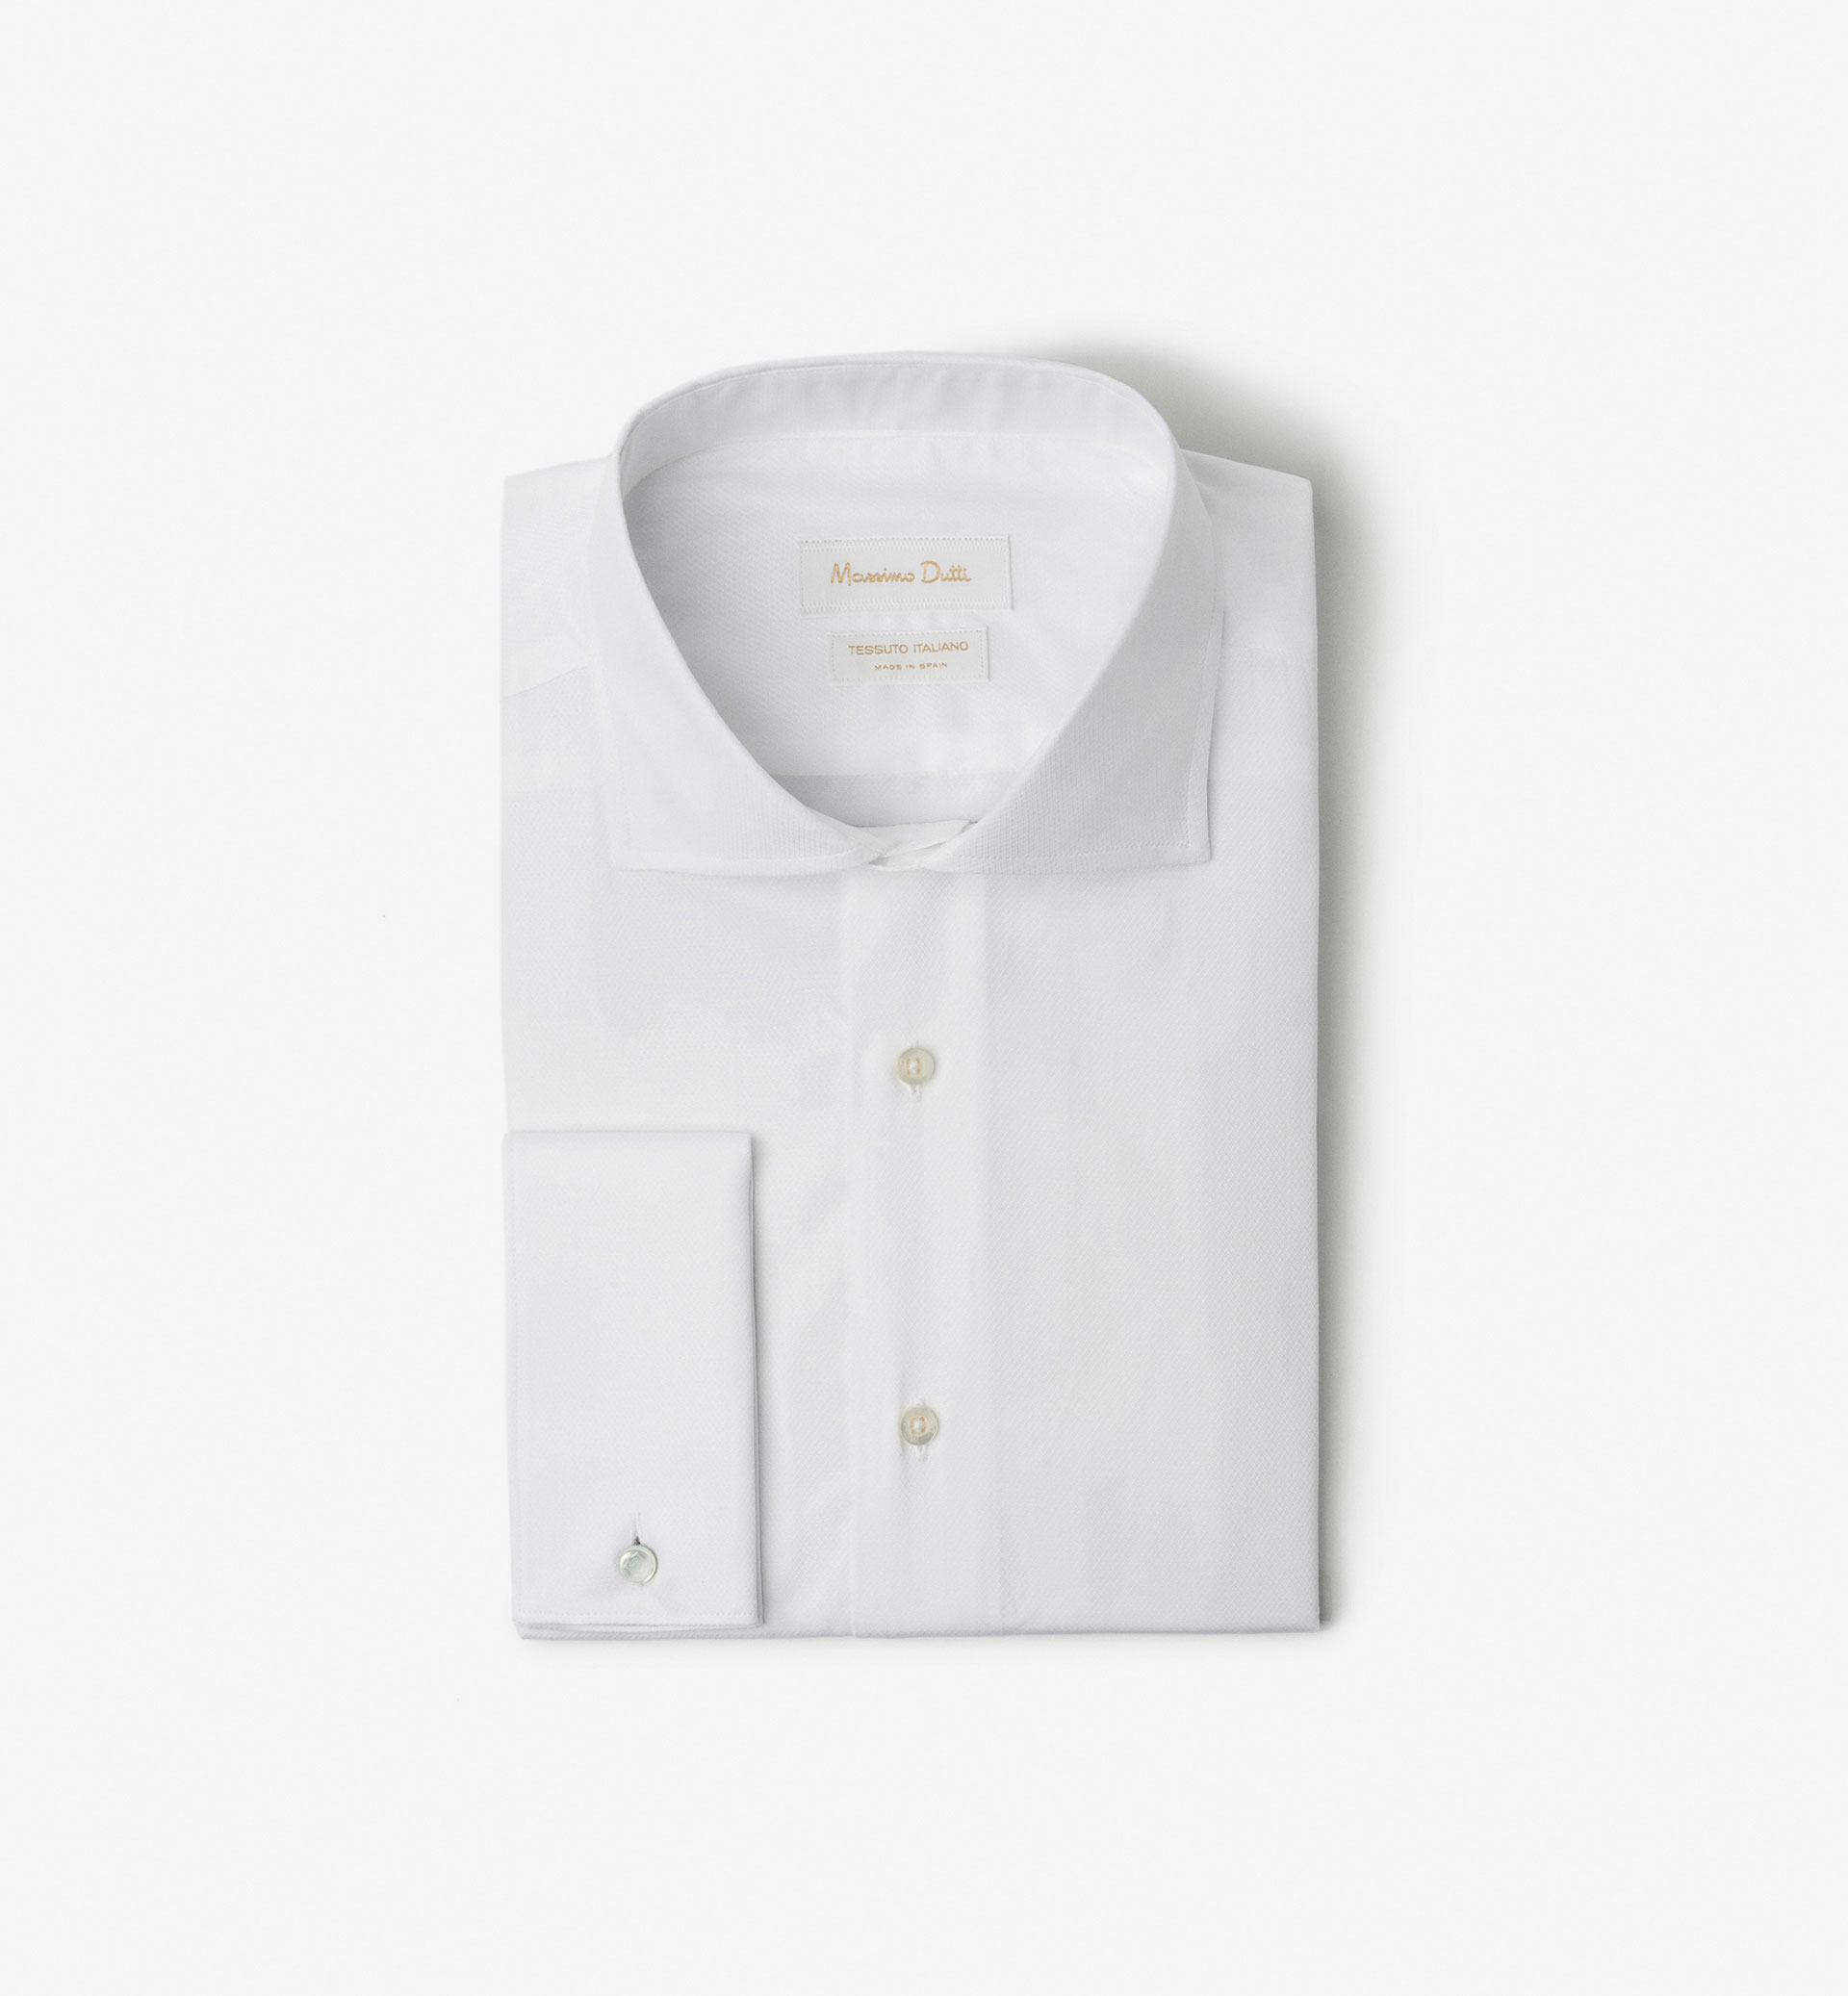 SLIM FIT PLAIN SHIRT WITH MICRO-TEXTURED WEAVE AND TURN-BACK CUFFS